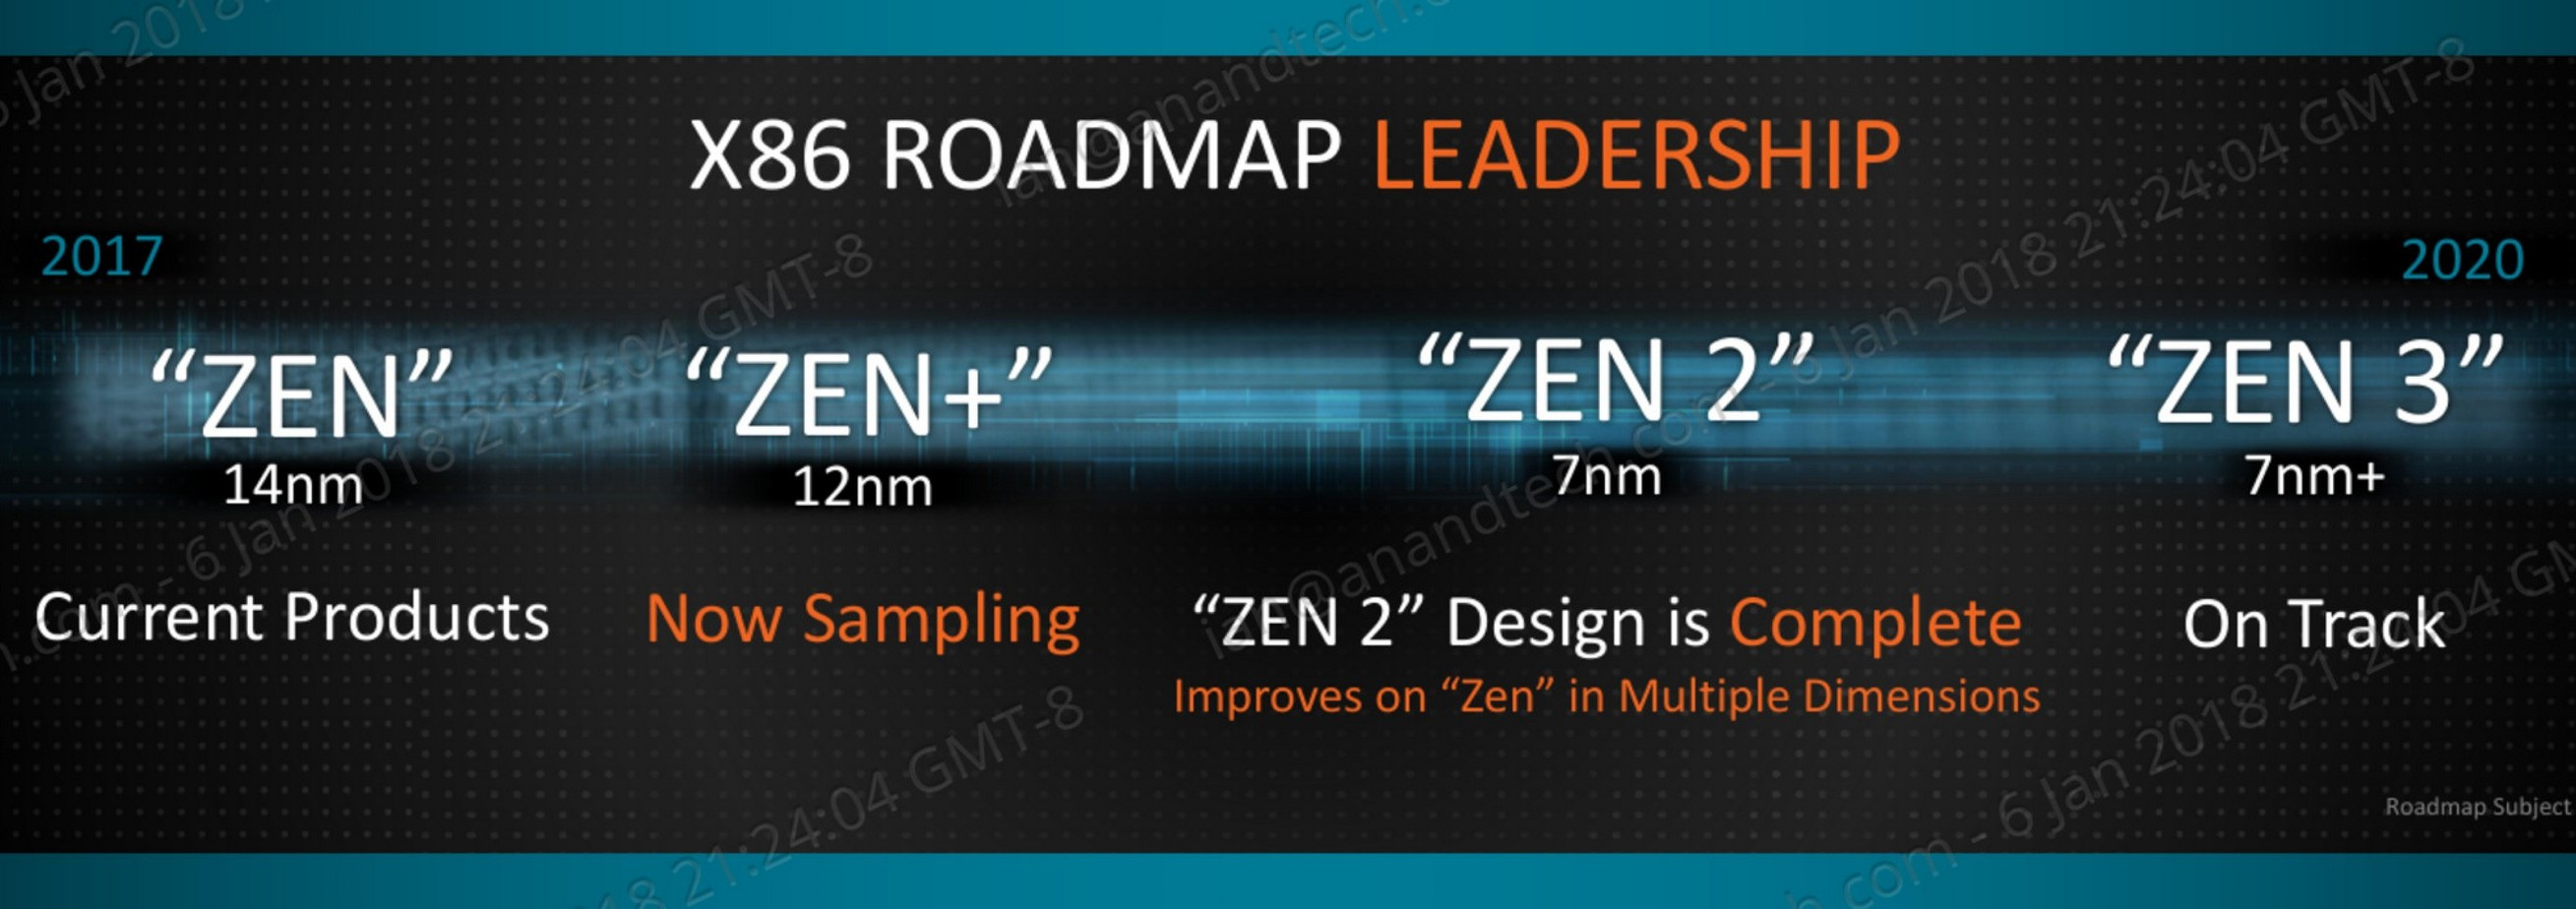 Amd Tech Day At Ces 2018 Roadmap Revealed With Ryzen Apus Zen On 12nm Vega On 7nm